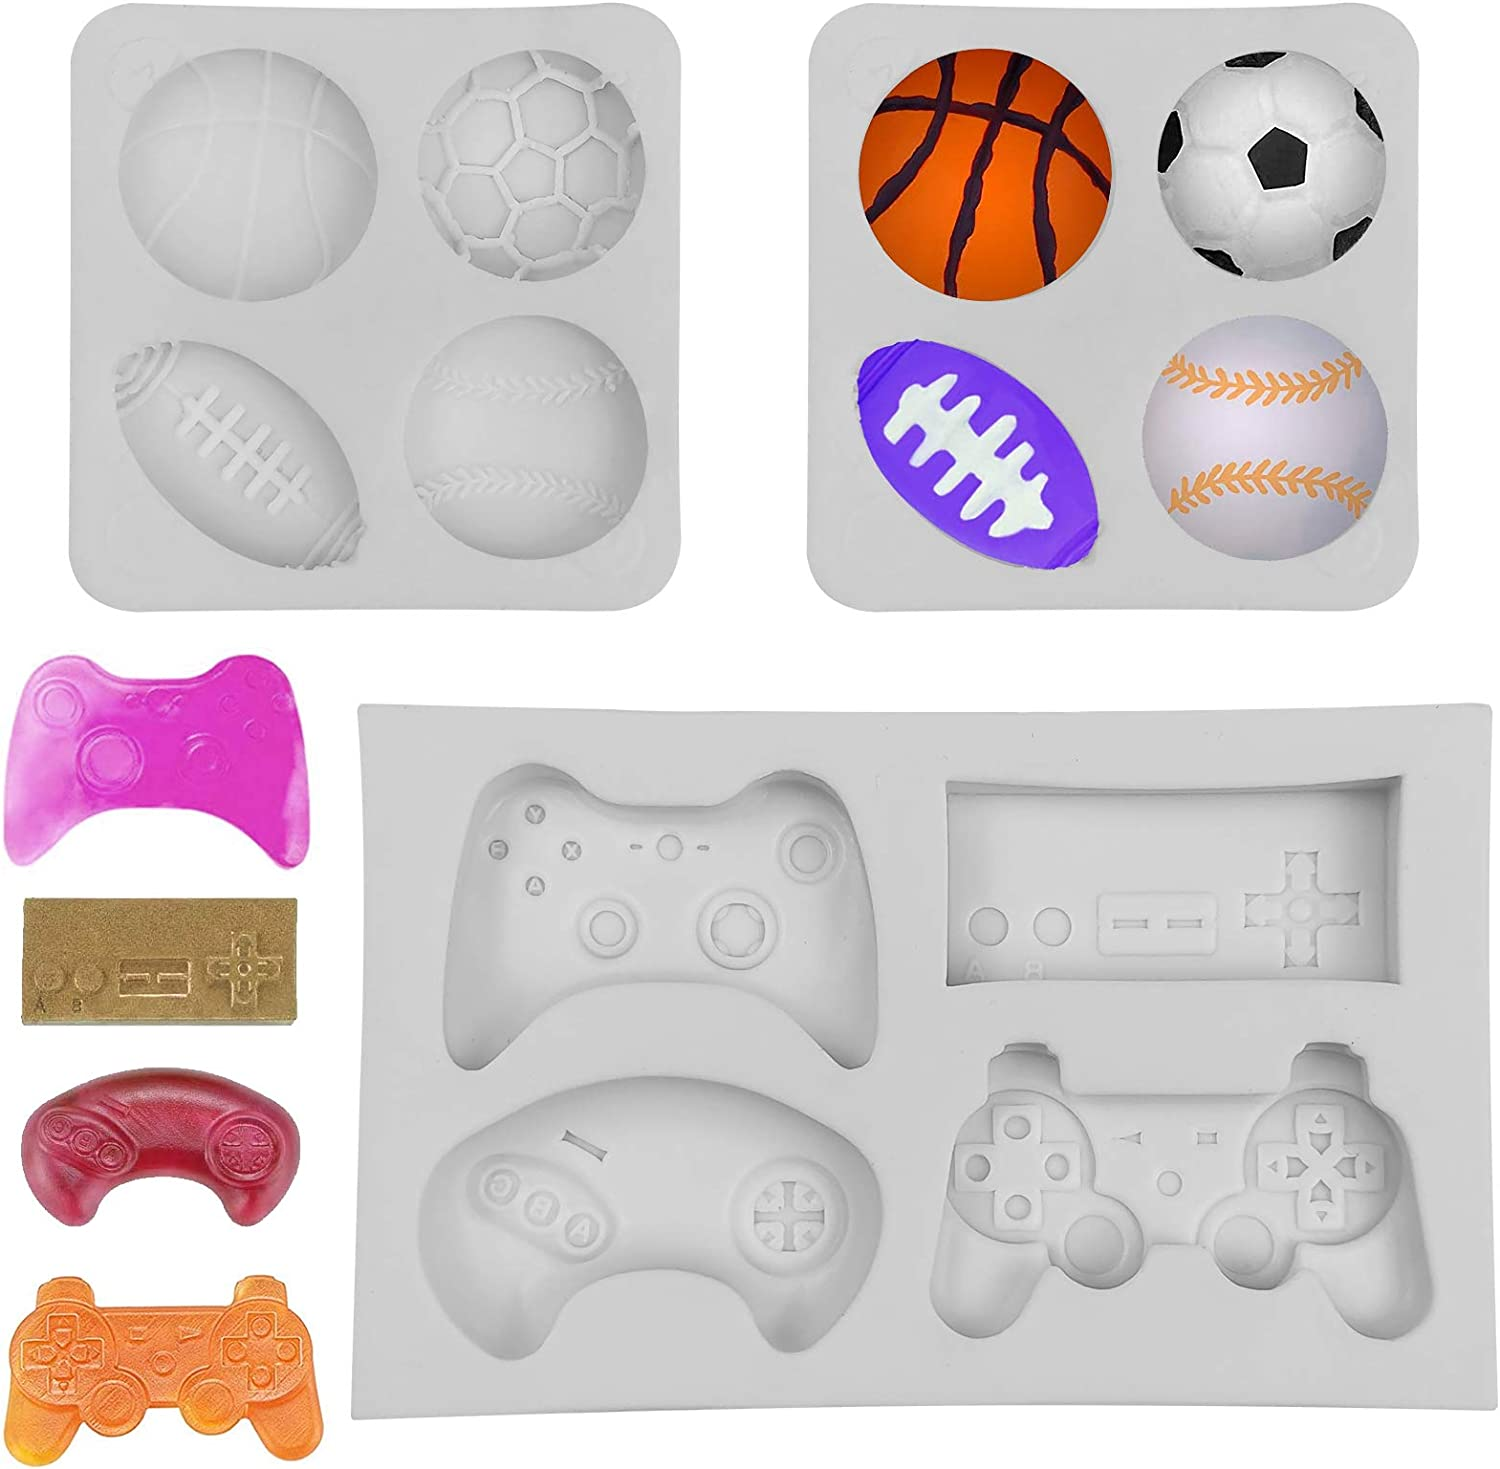 3 Pack Chocolate Fondant Molds, Game Controller Mold Ball Cake Silicone Molds, Football Basketball Baseball Rugby Candy Molds for Cake Decoration, Resin, Polymer Clay, Pudding, Keychain, Grey